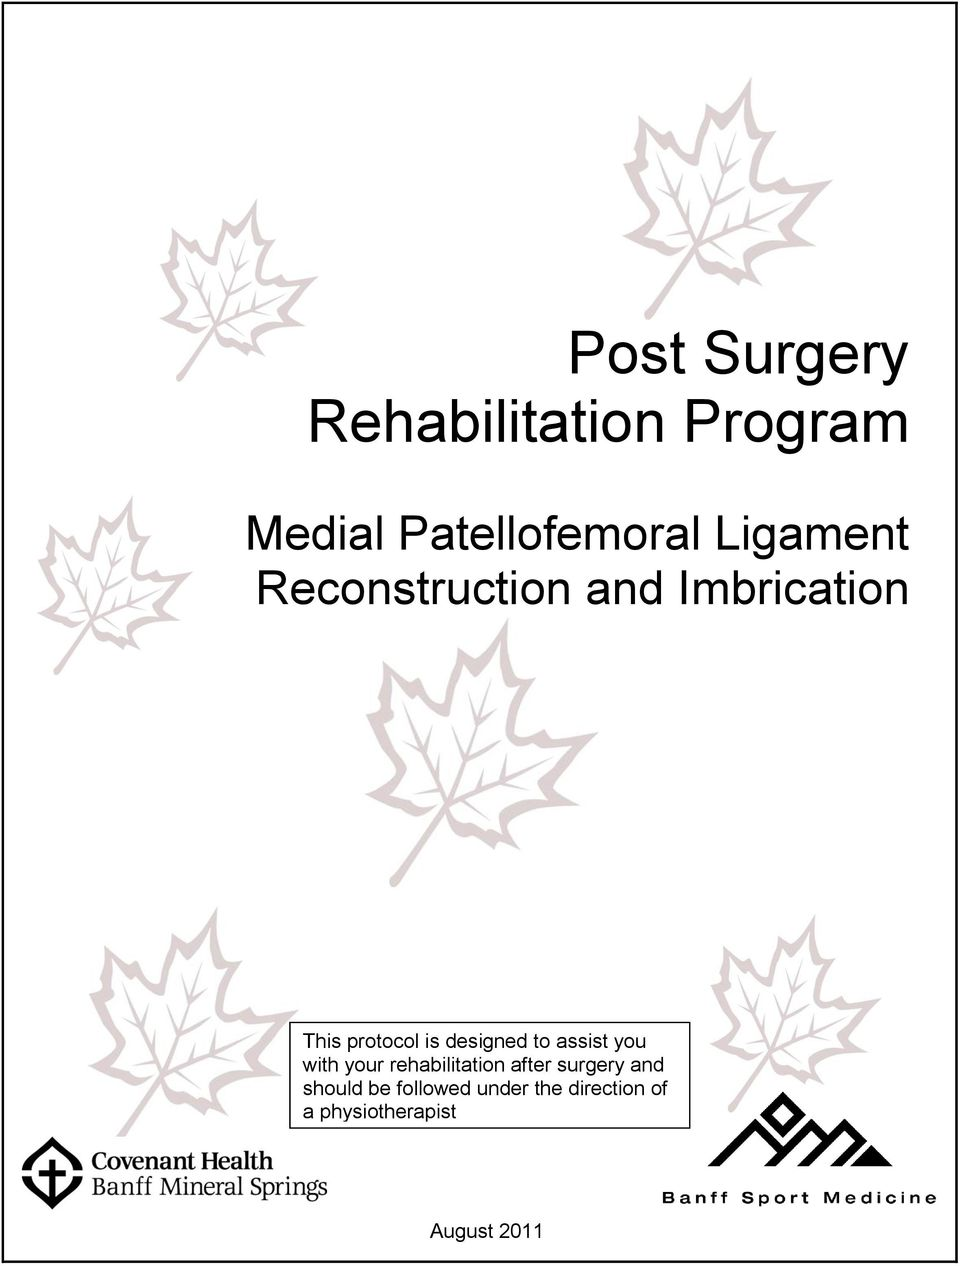 designed to assist you with your rehabilitation after surgery